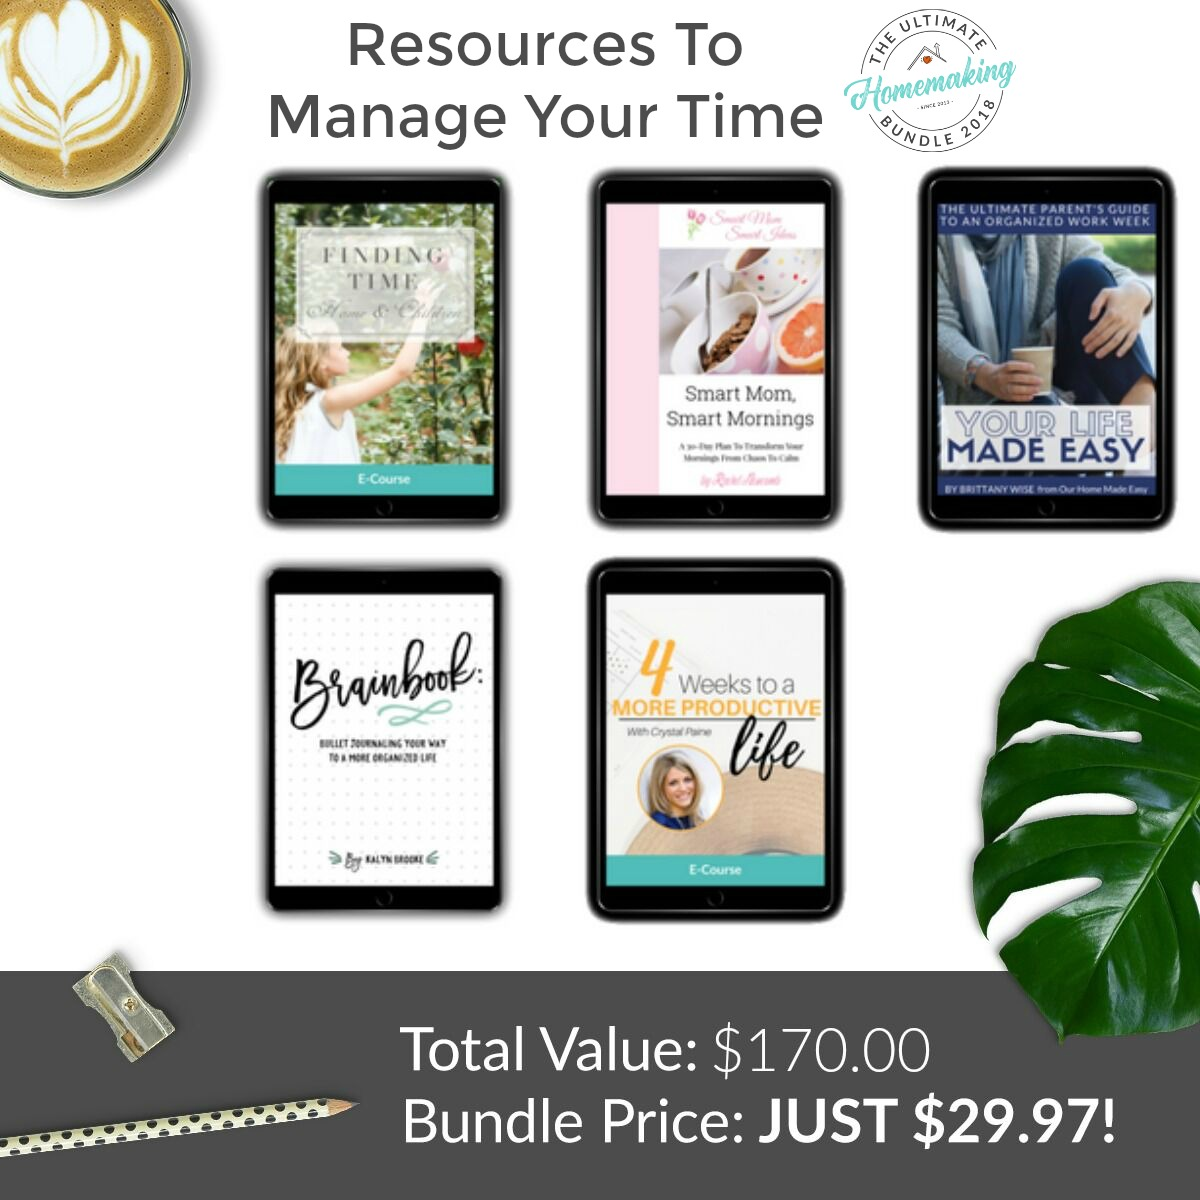 Here are some of the resources to manage your time that are available in the Ultimate Homemaking Bundle.